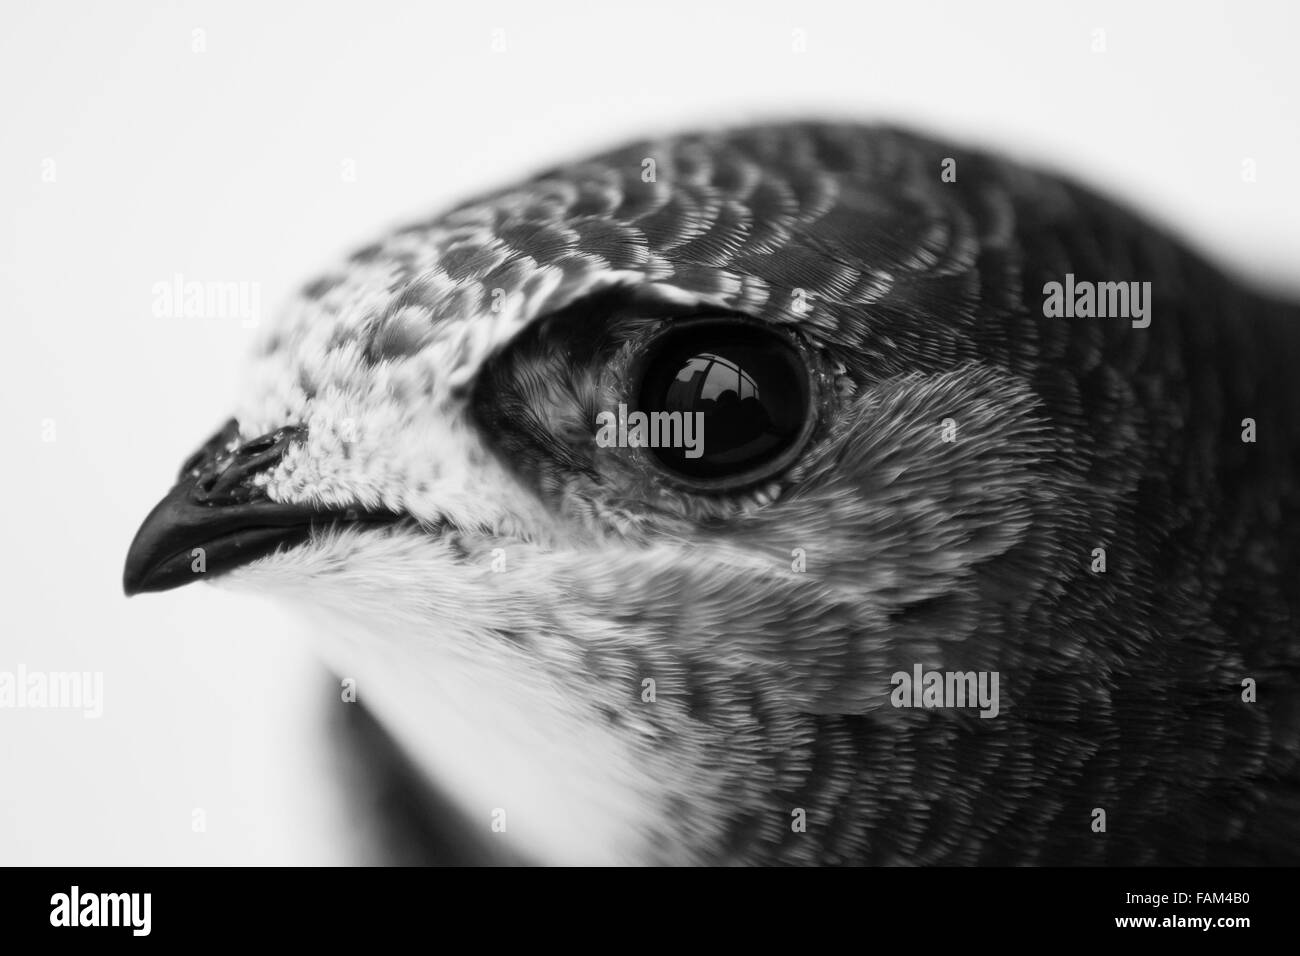 Juvenile Common Swift, Apus apus portrait - Stock Image